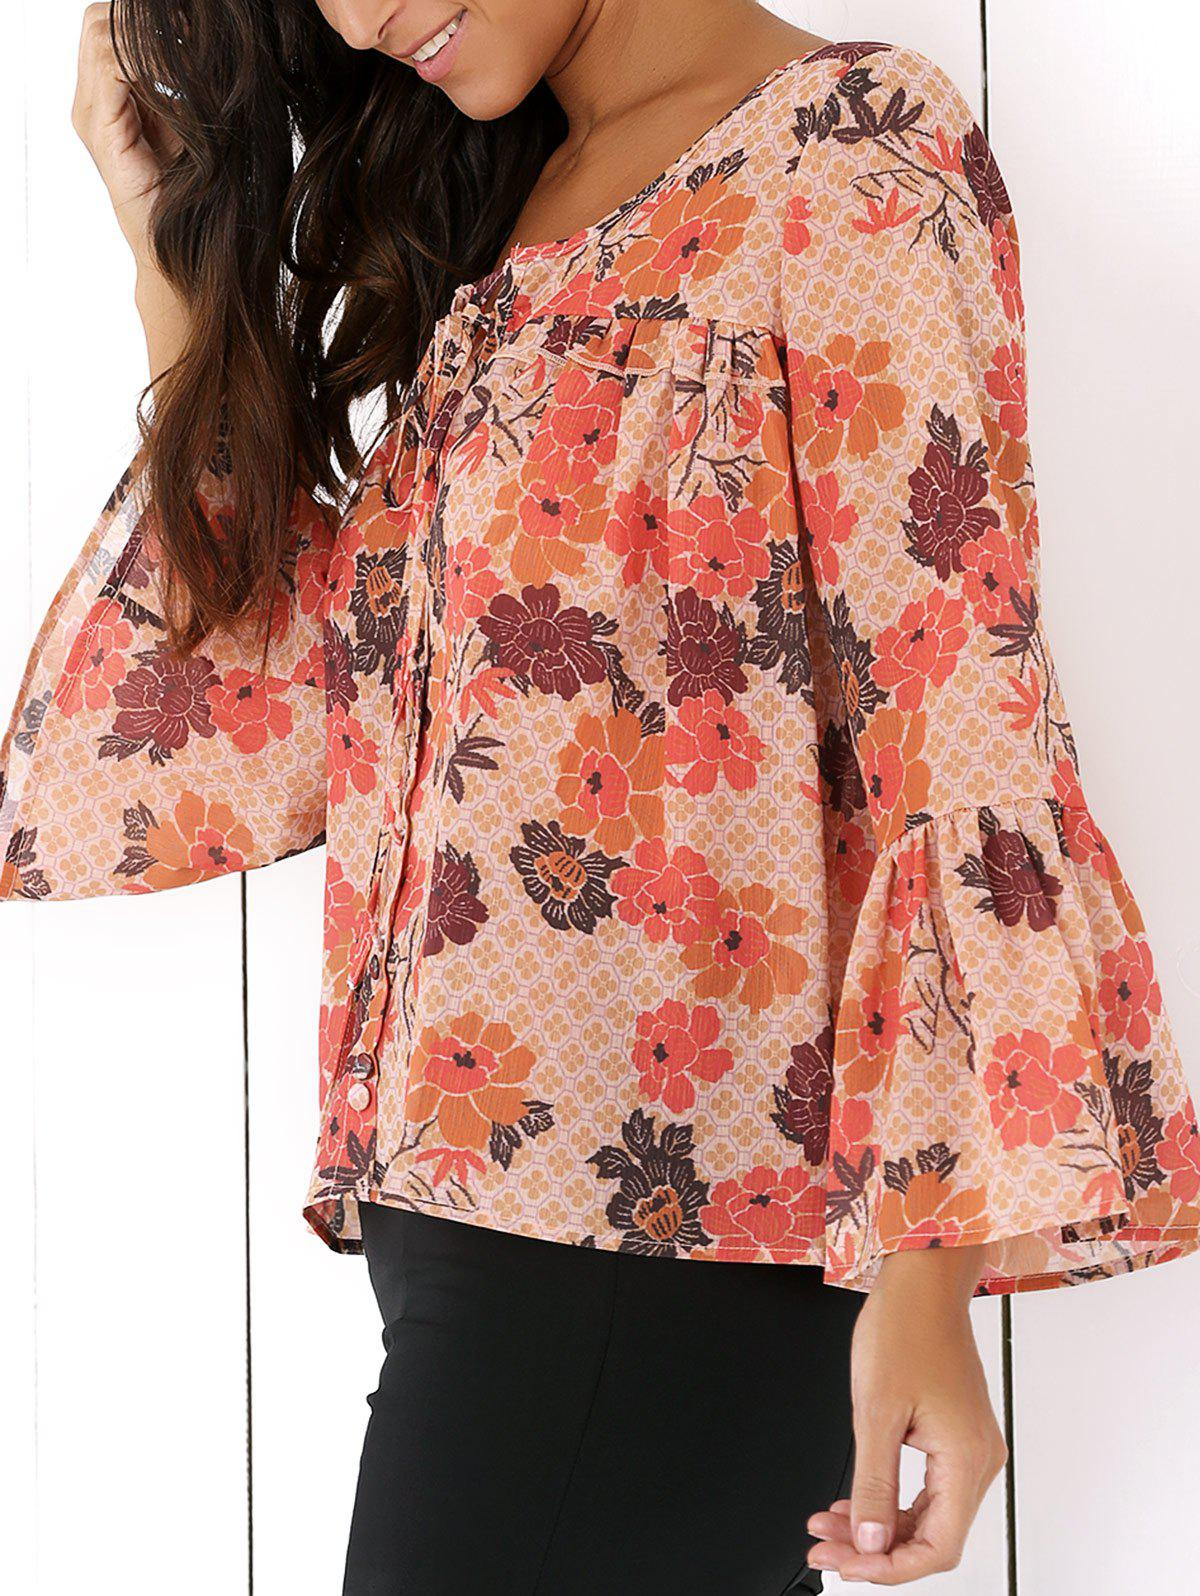 Flowers Print Ruffles Blouse - COLORMIX XL